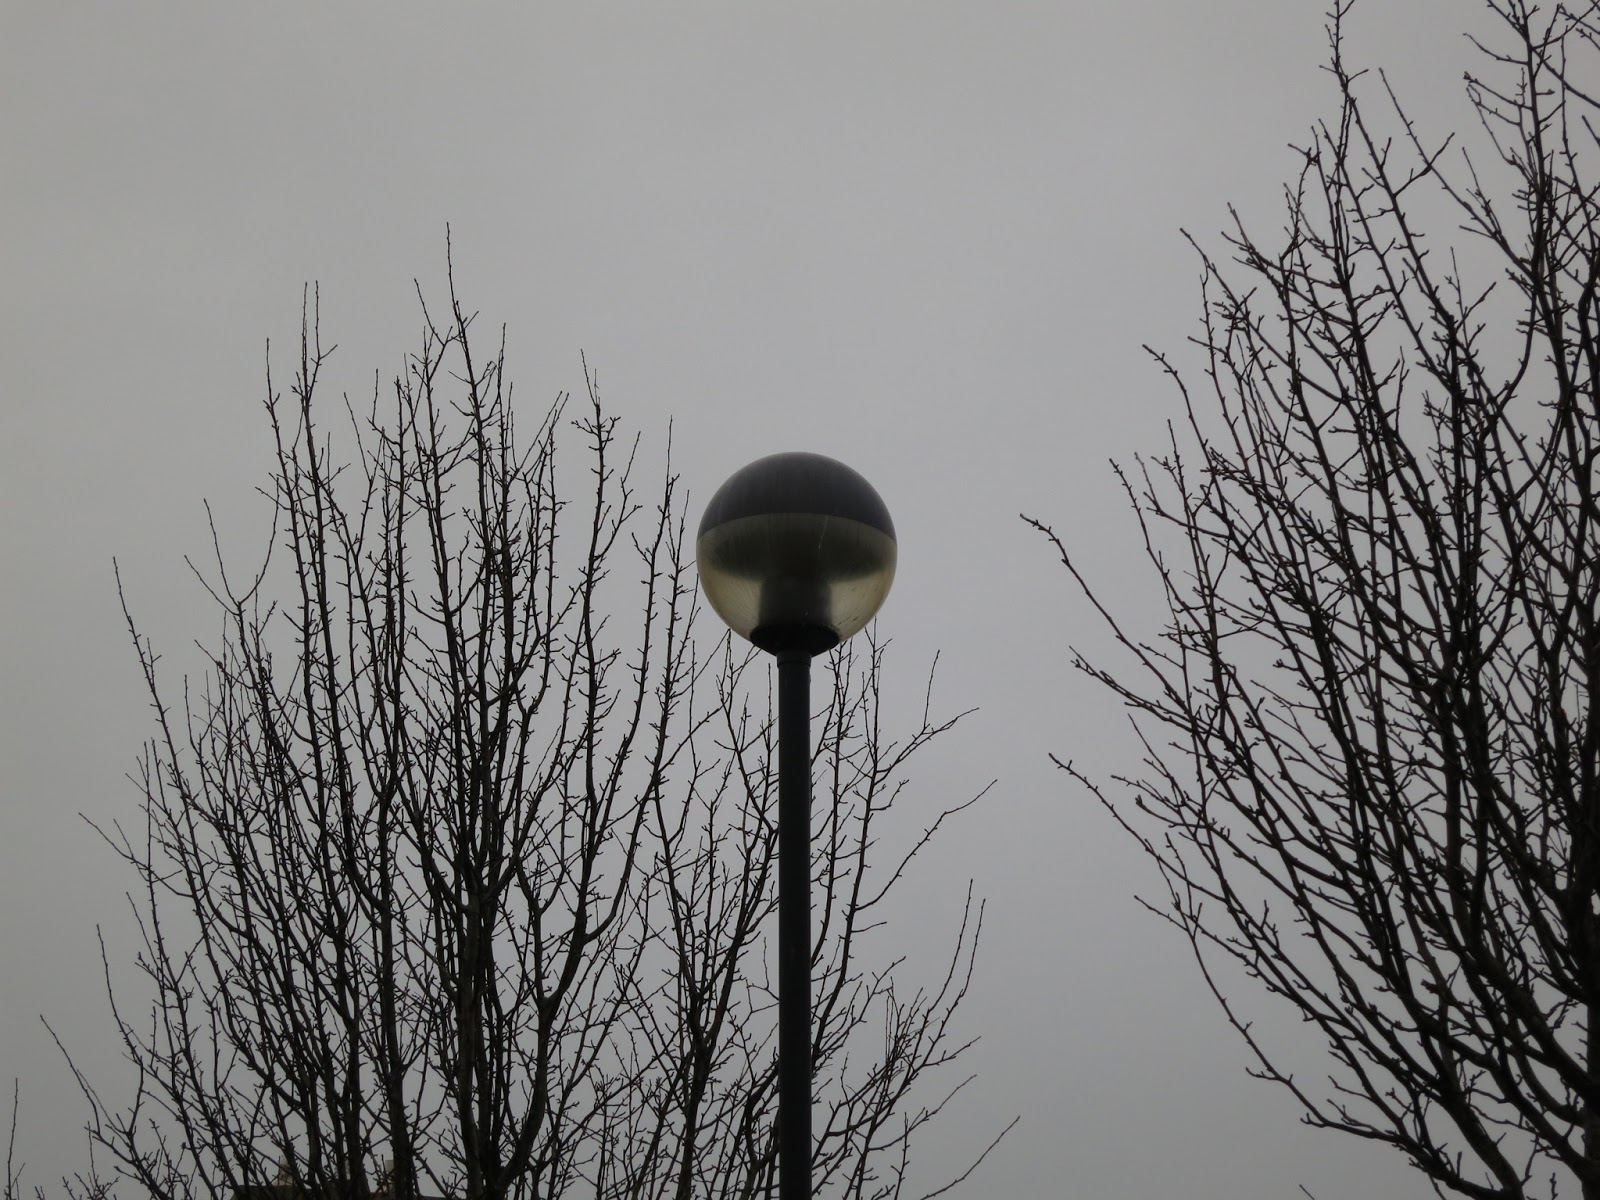 Lampost and trees silhouetted against grey sky.